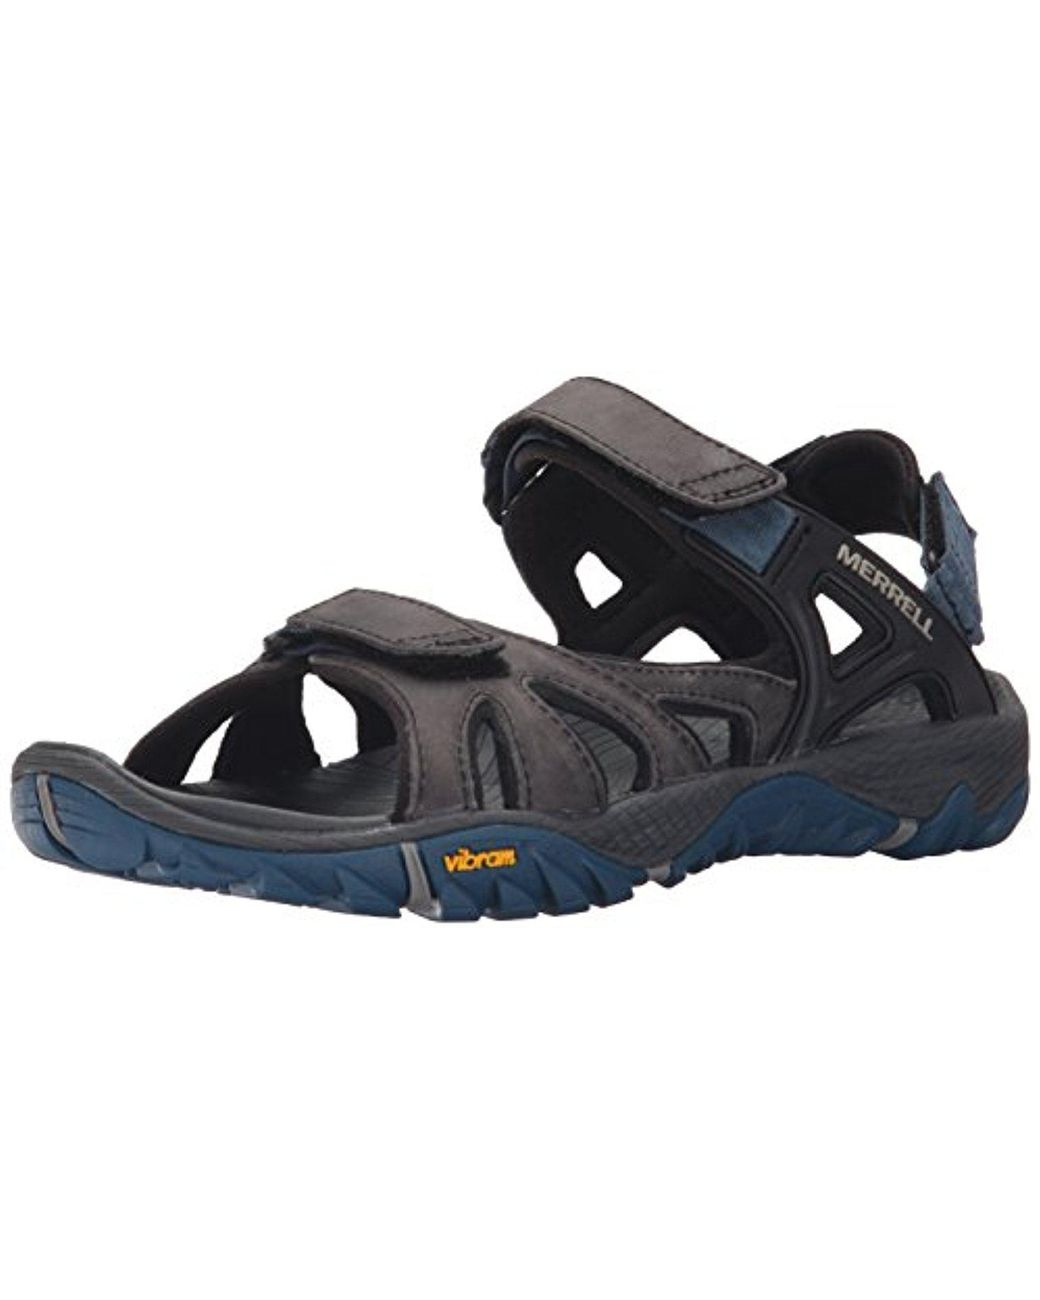 3a8a0131fb86 Lyst - Merrell  s All Out All Out Blaze Sieve Convert Hiking Sandals ...